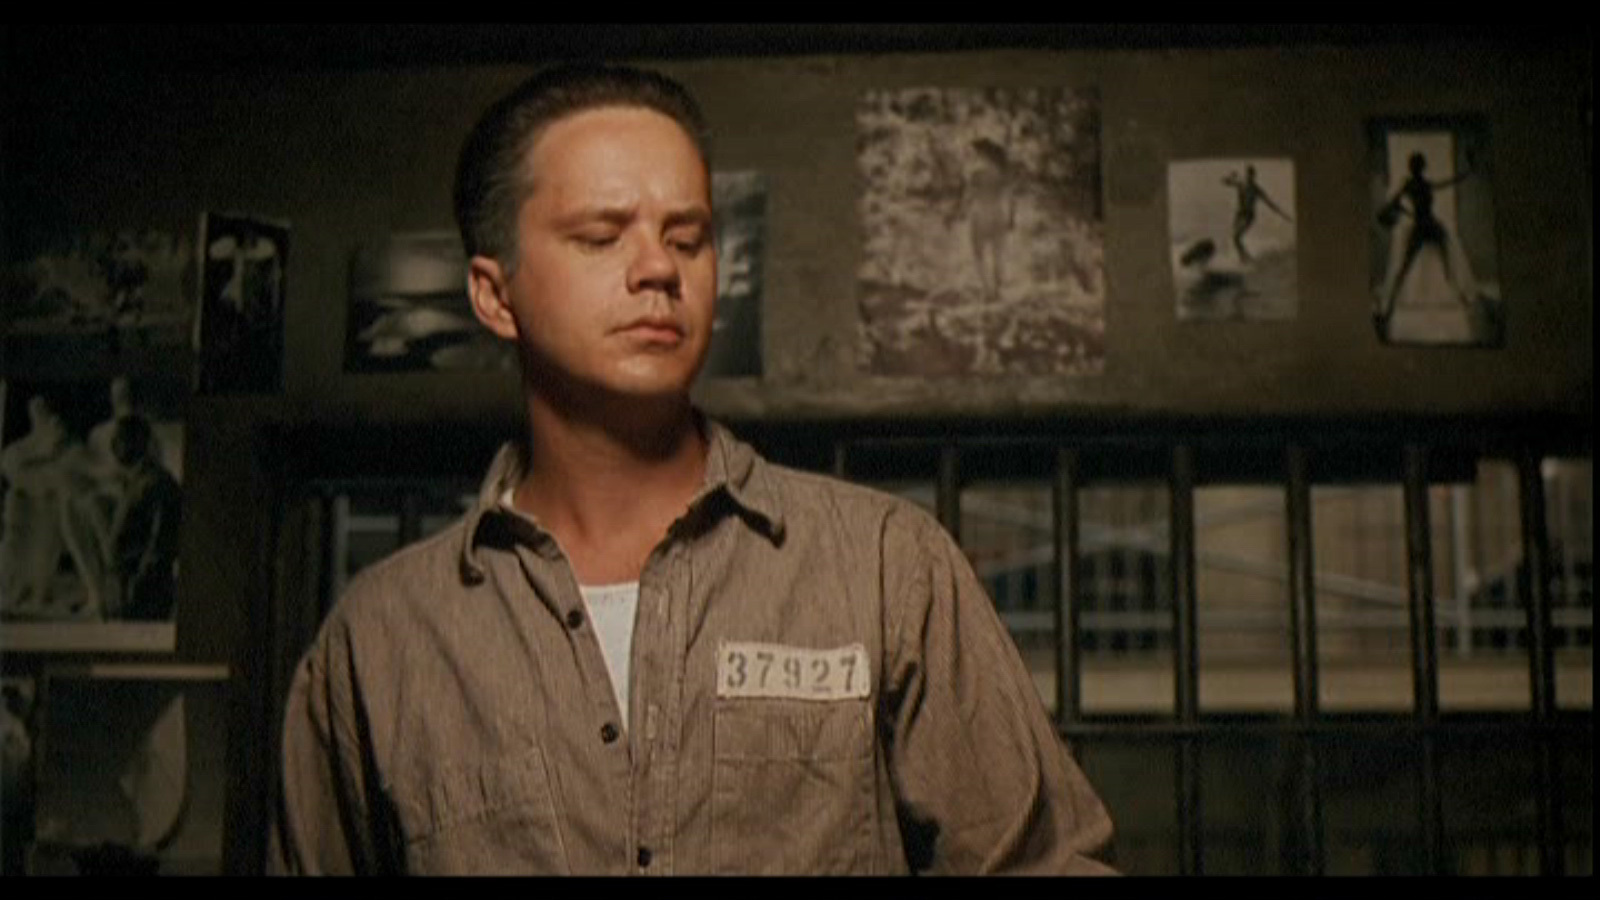 a summary of the movie the shawshank redemption Tender, funny, and inspirational, the shawshank redemption is a well-crafted prison drama and another great movie to add to frank darabont's impressive filmography.